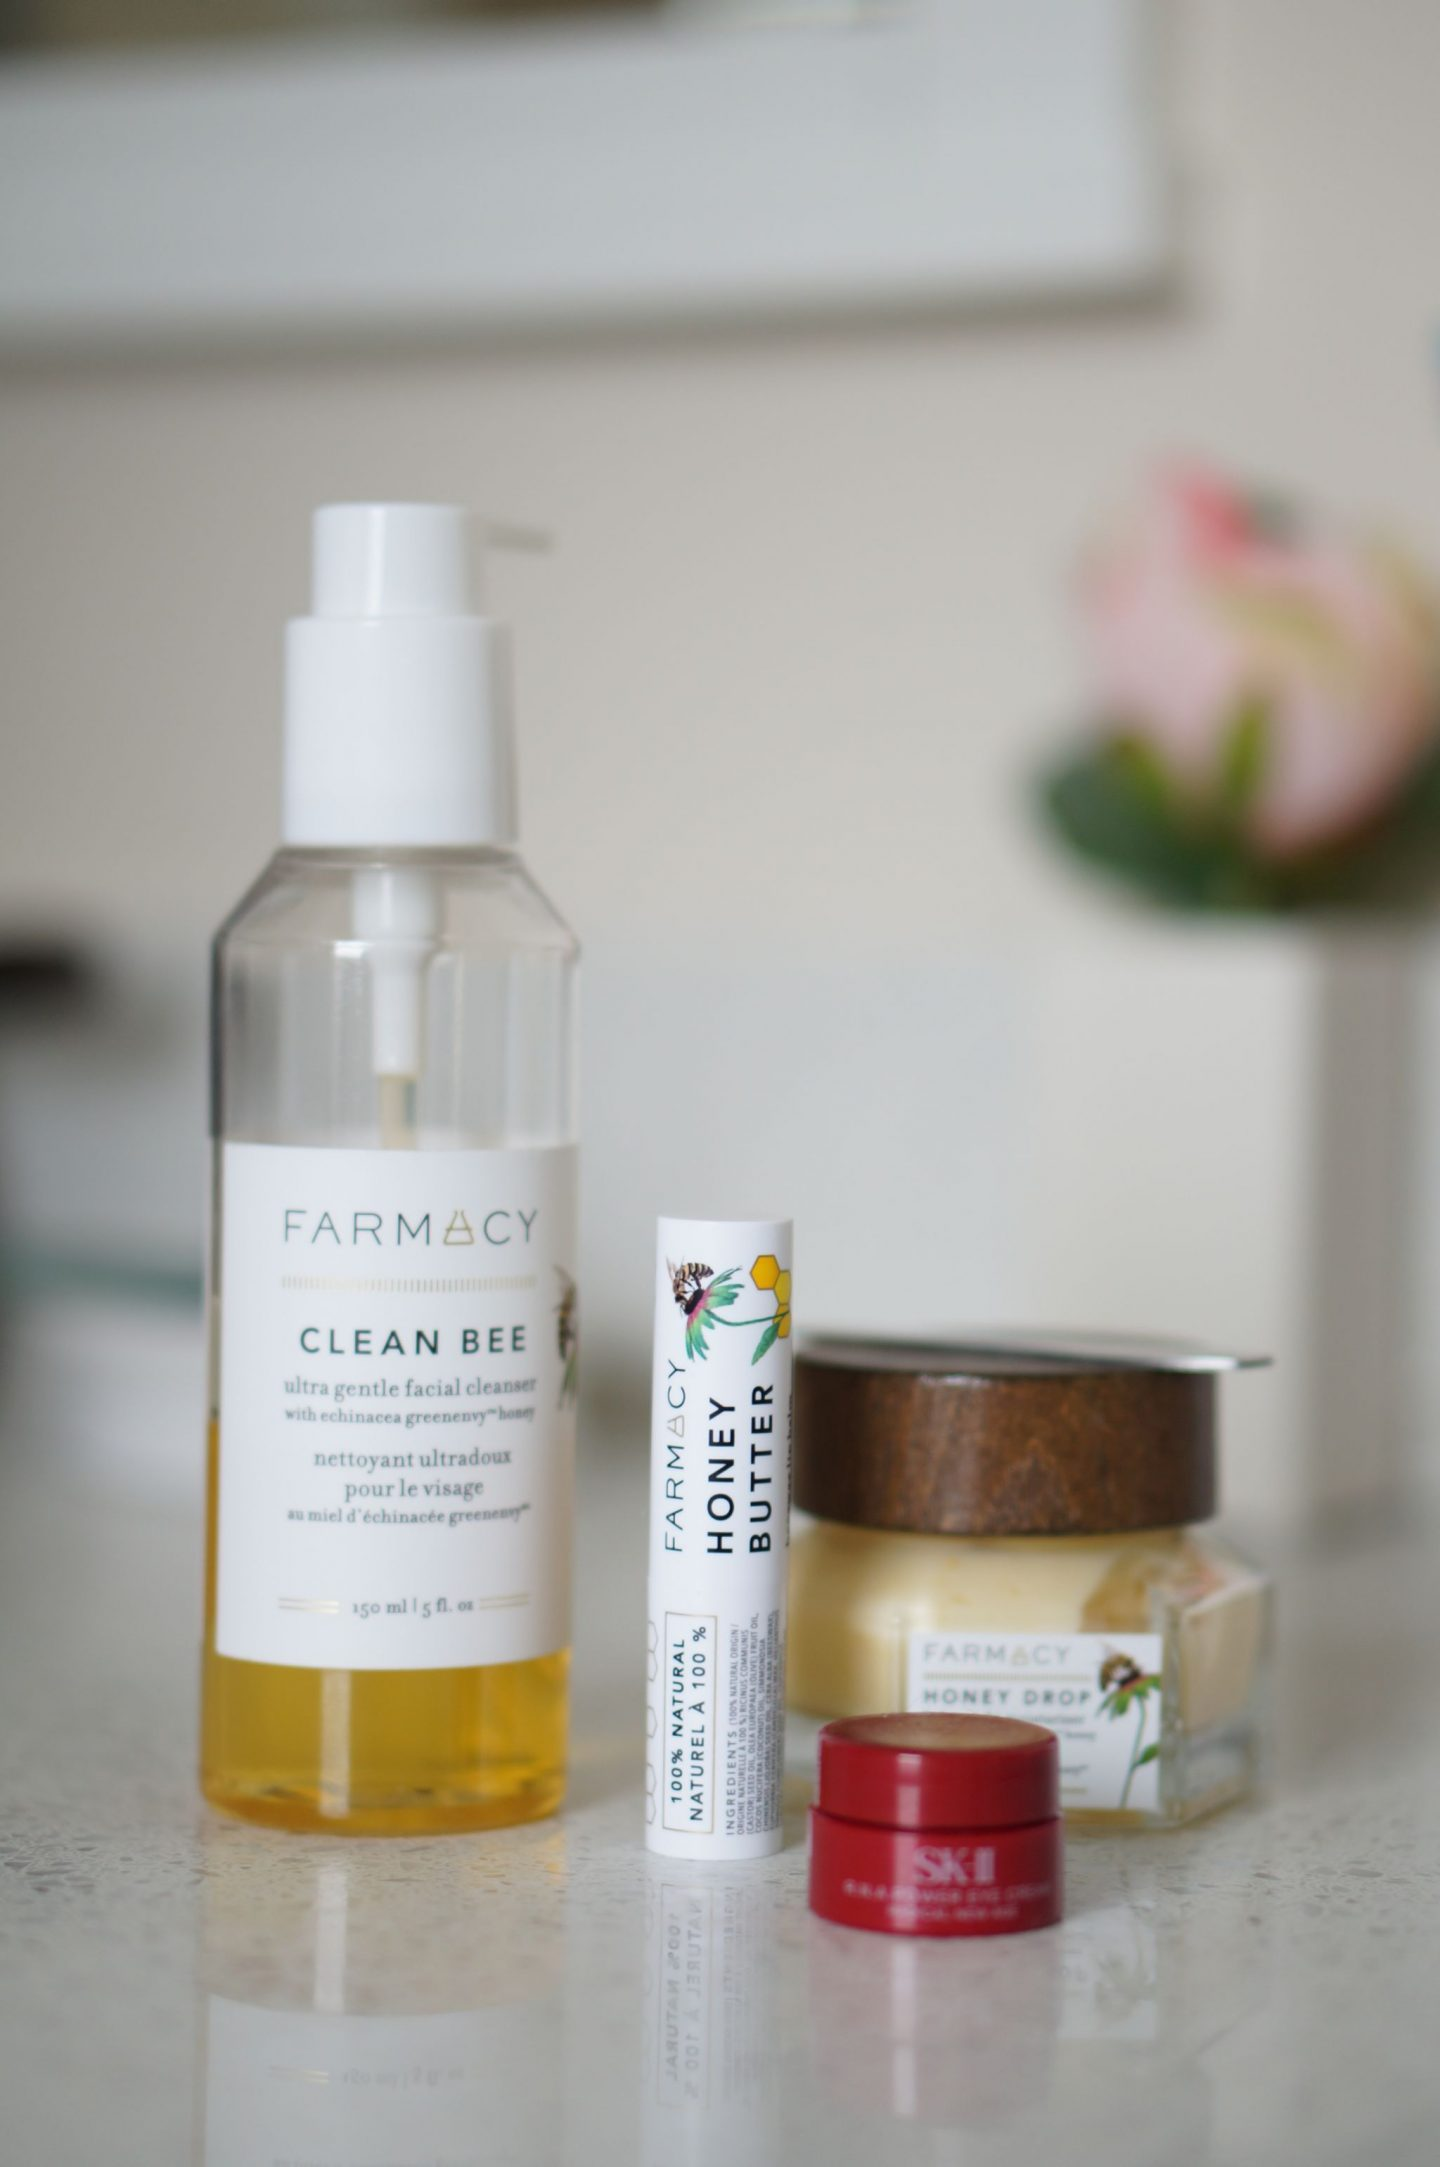 North Carolina style blogger Rebecca Lately shares her updated skincare routine. She is sharing both her morning and night cruelty free routines.